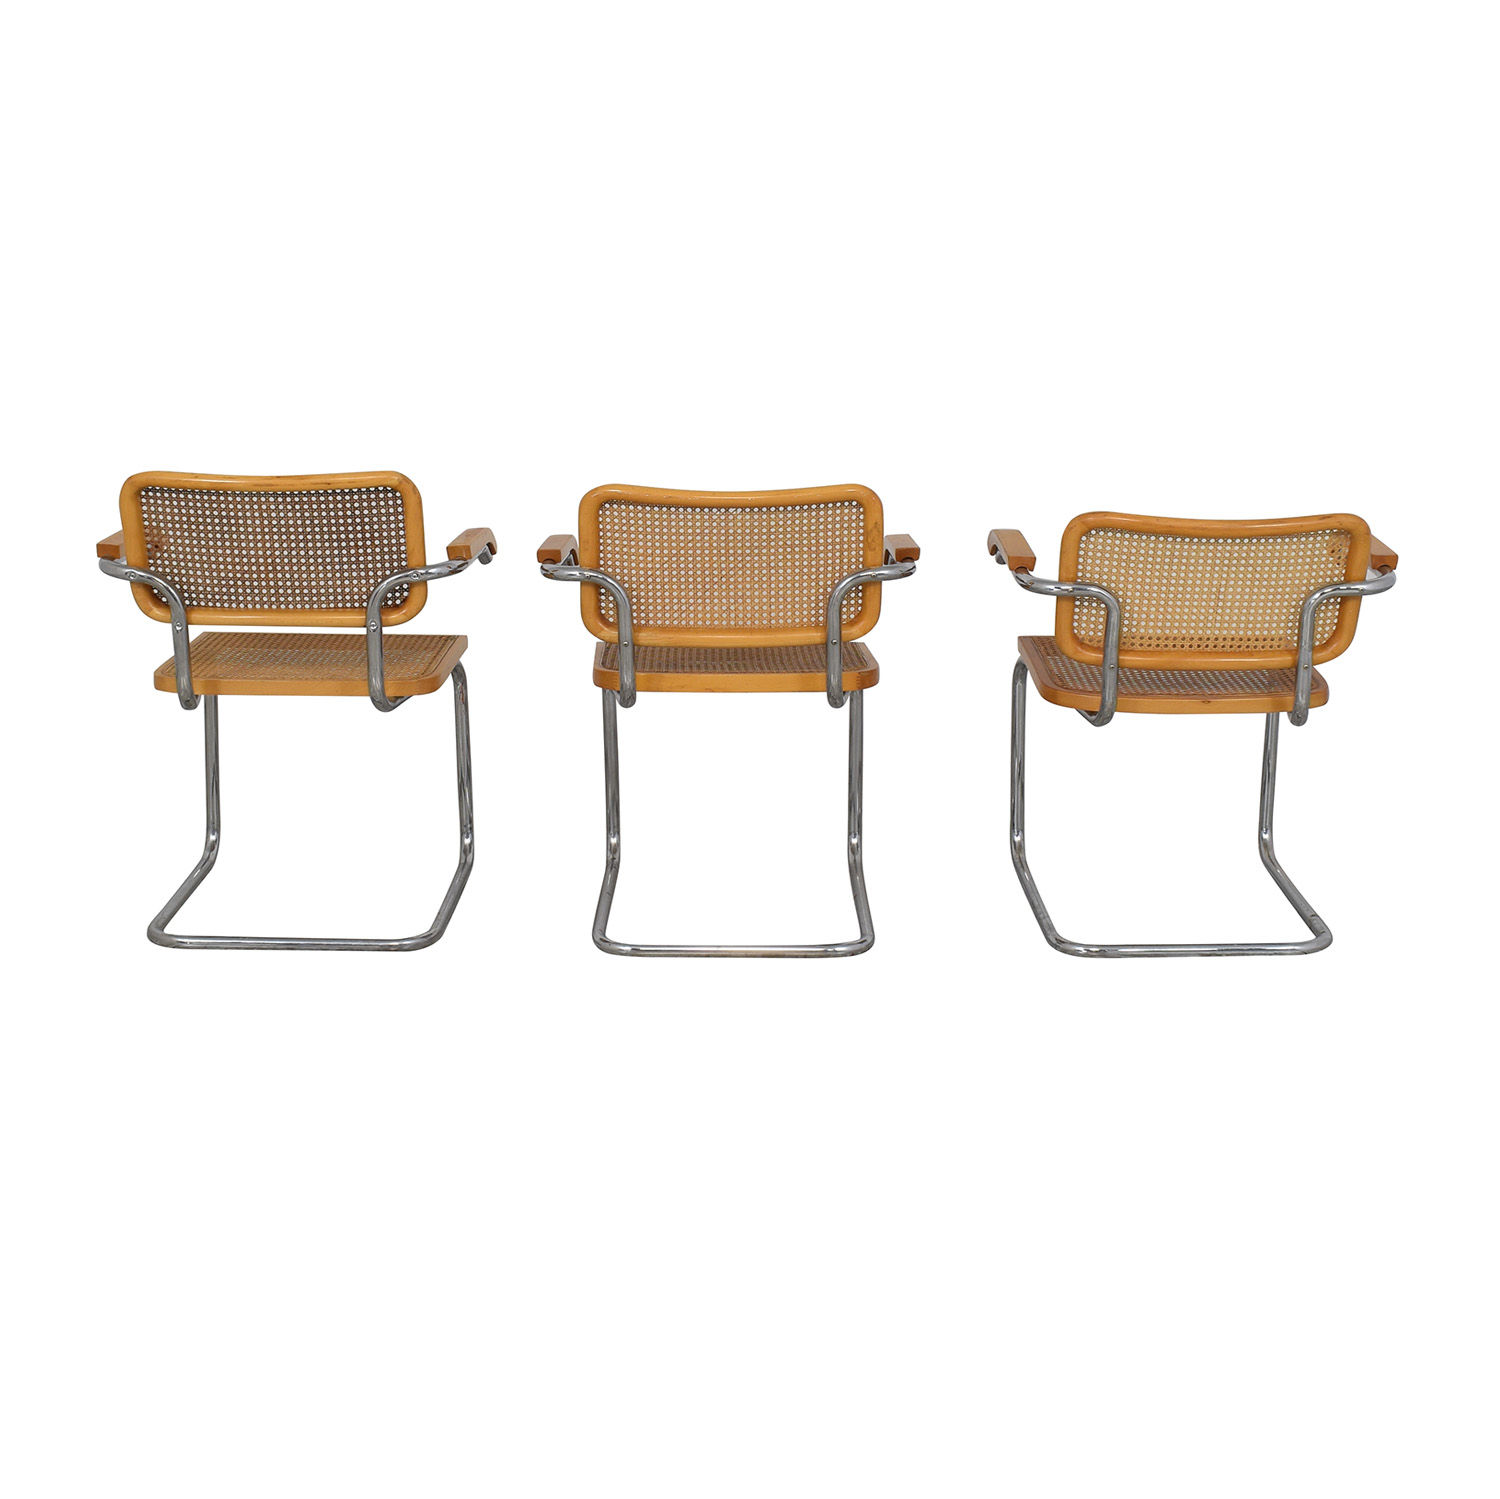 Scandinavian Designs Scandinavian Designs Bendt Dining Arm Chairs Dining Chairs